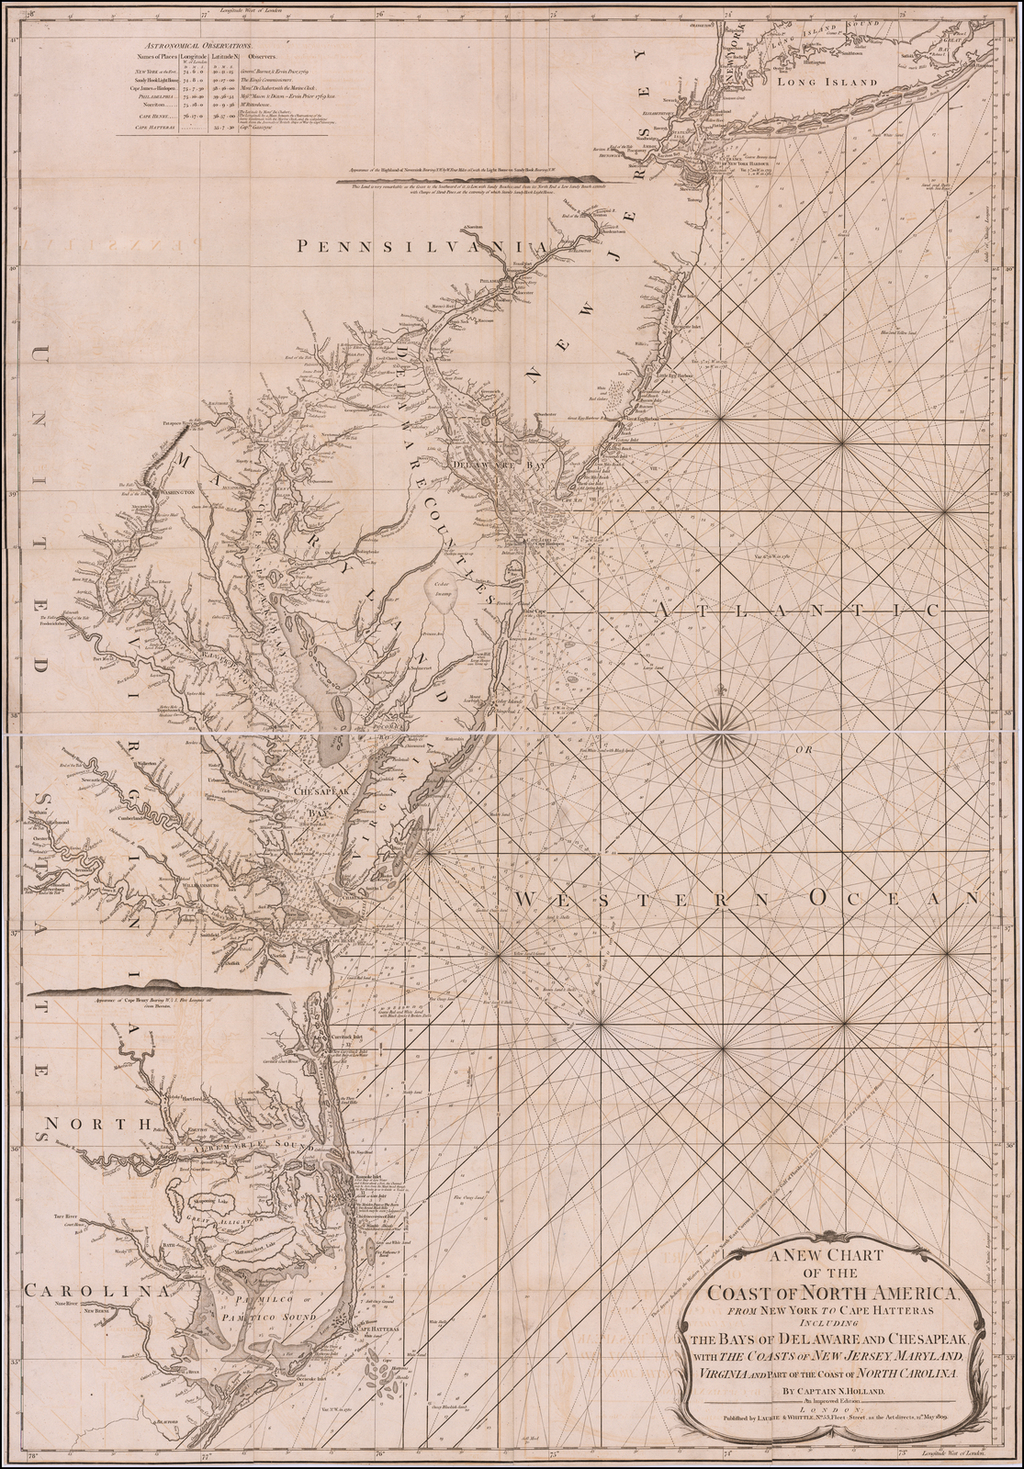 A New Chart of the Coast of North America From New York to Cape Hatteras Including the Bays of Delaware and Chesapeak, with The Coasts of New Jersey, Maryland, Virginia andPart of the Coast of North Carolina.   By Captain N. Holland.  An Improved Edition . . . 1809 By James Whittle  &  Robert Laurie